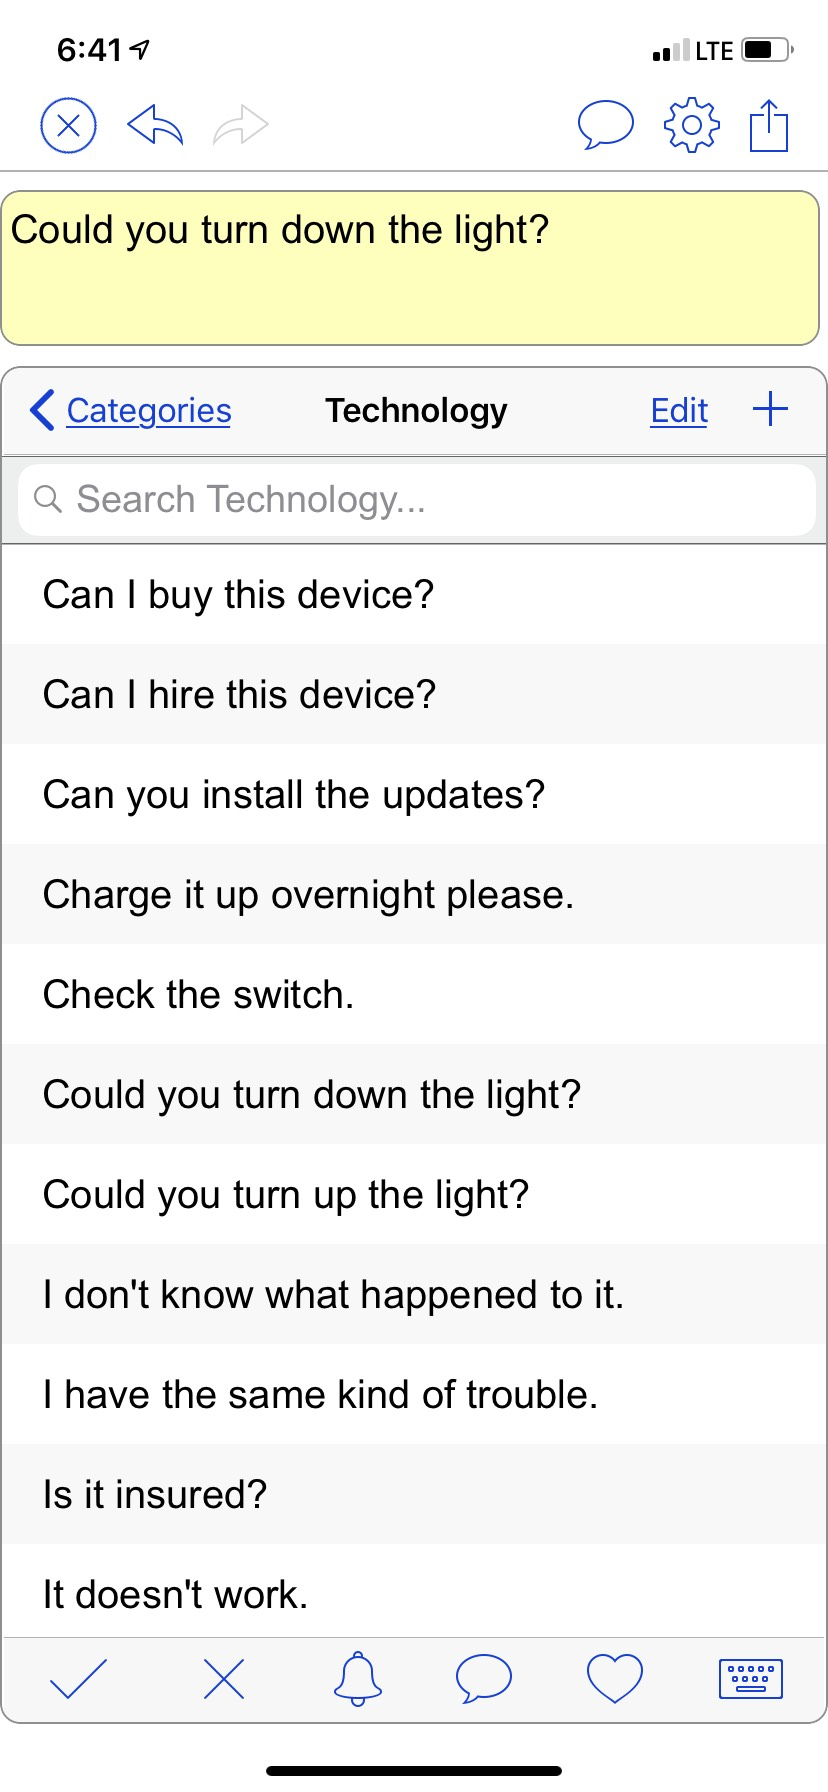 Screenshot of the technology board with questions such as, Can I buy this device? Can I hire this device? Can you install the update? Charge it overnight please, etc.